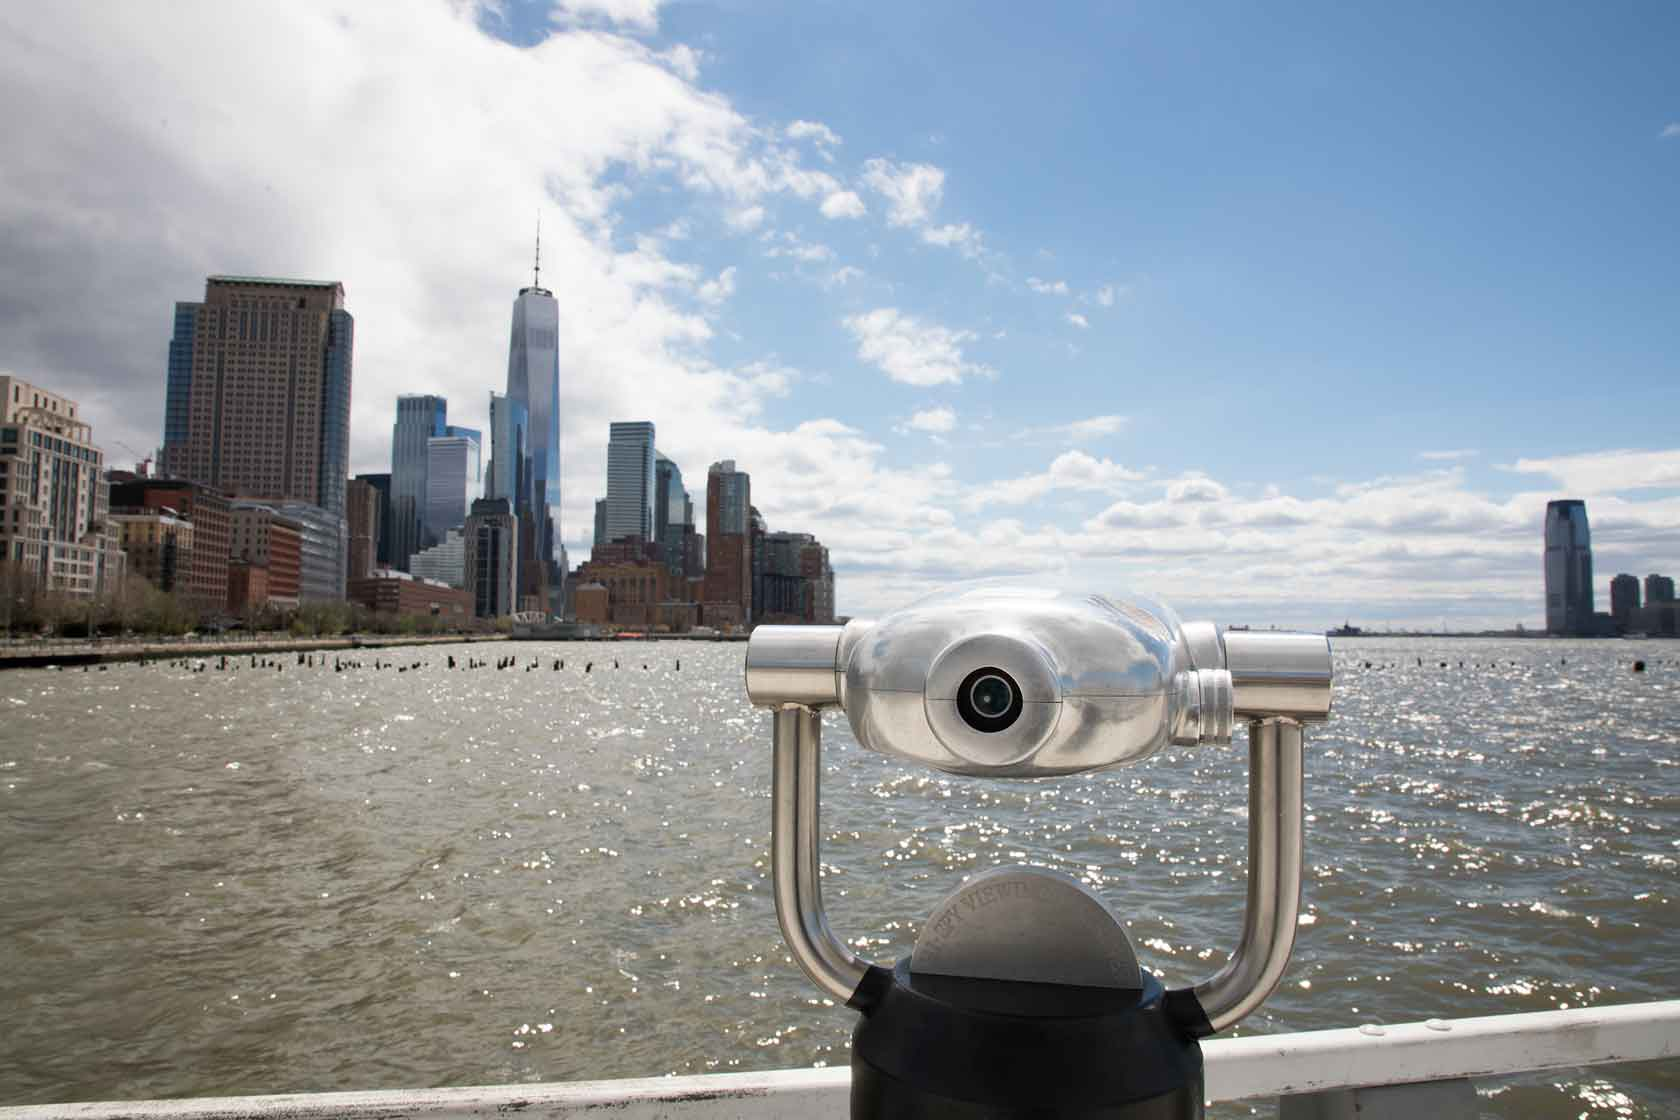 The view finder at Pier 34 positioned towards the statue of liberty